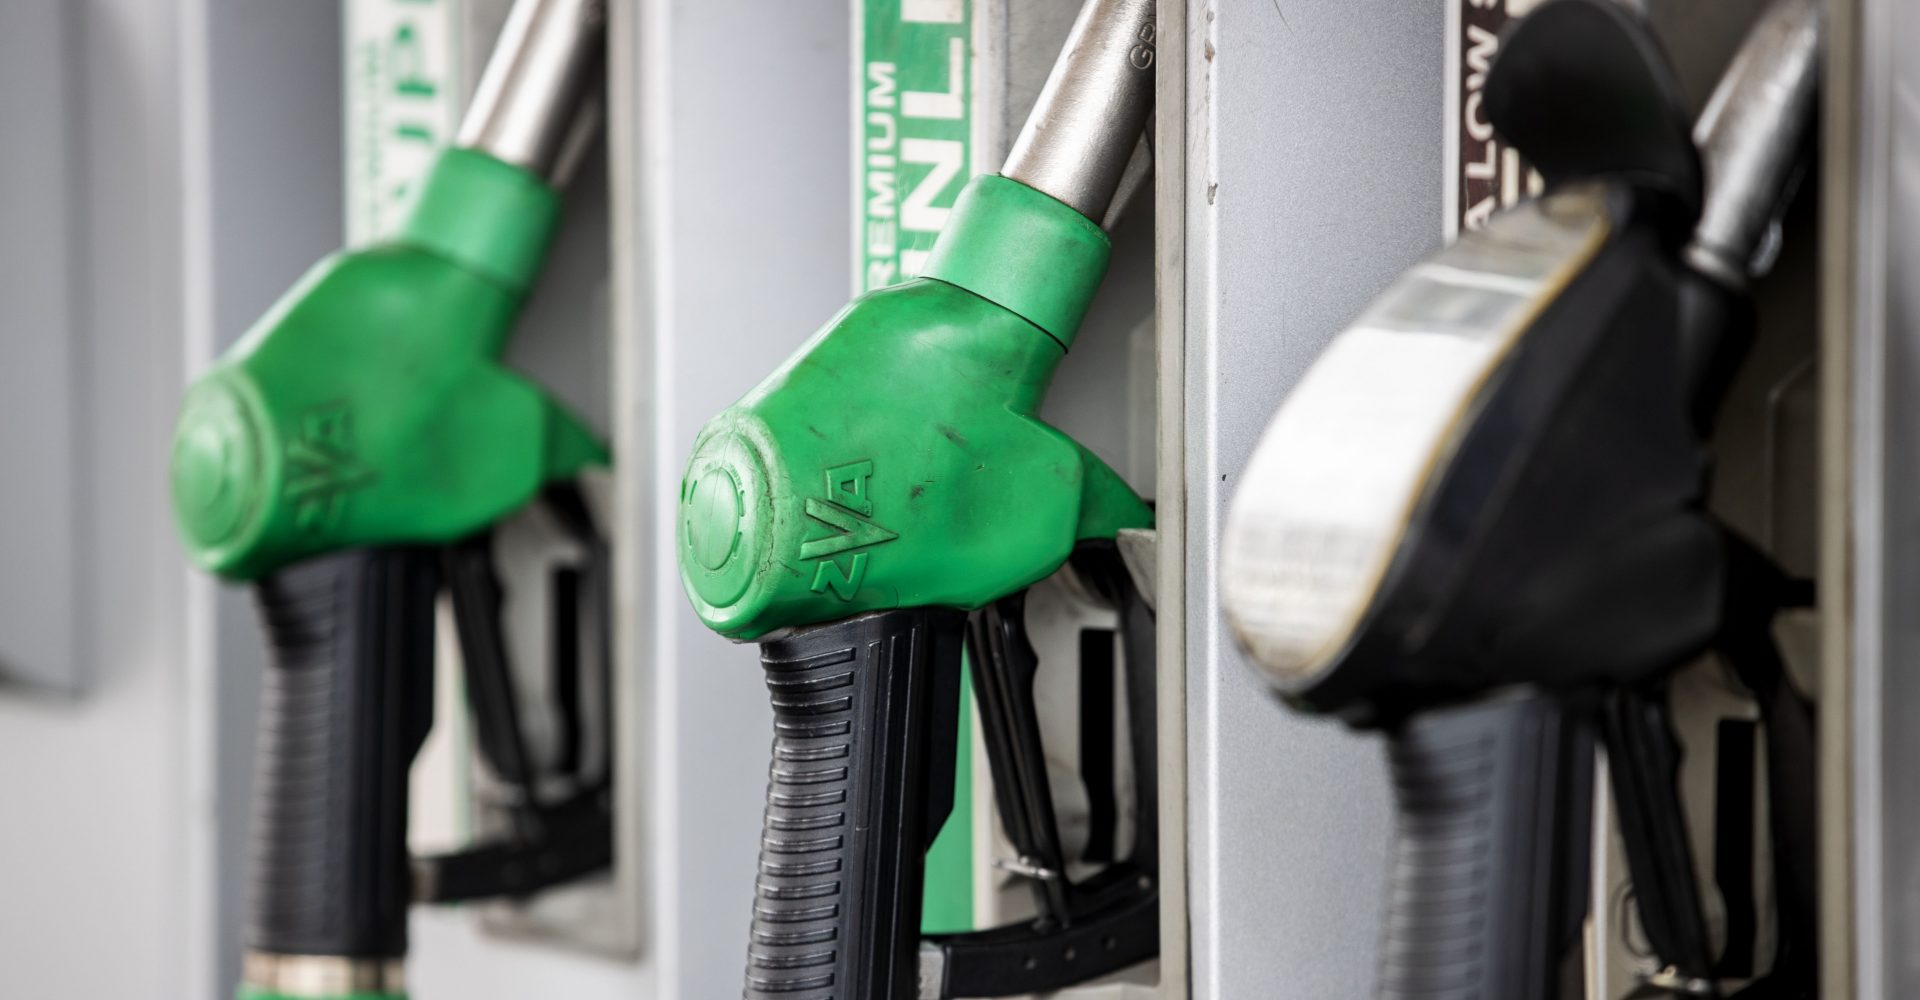 Biggest fall in fuel prices since records began